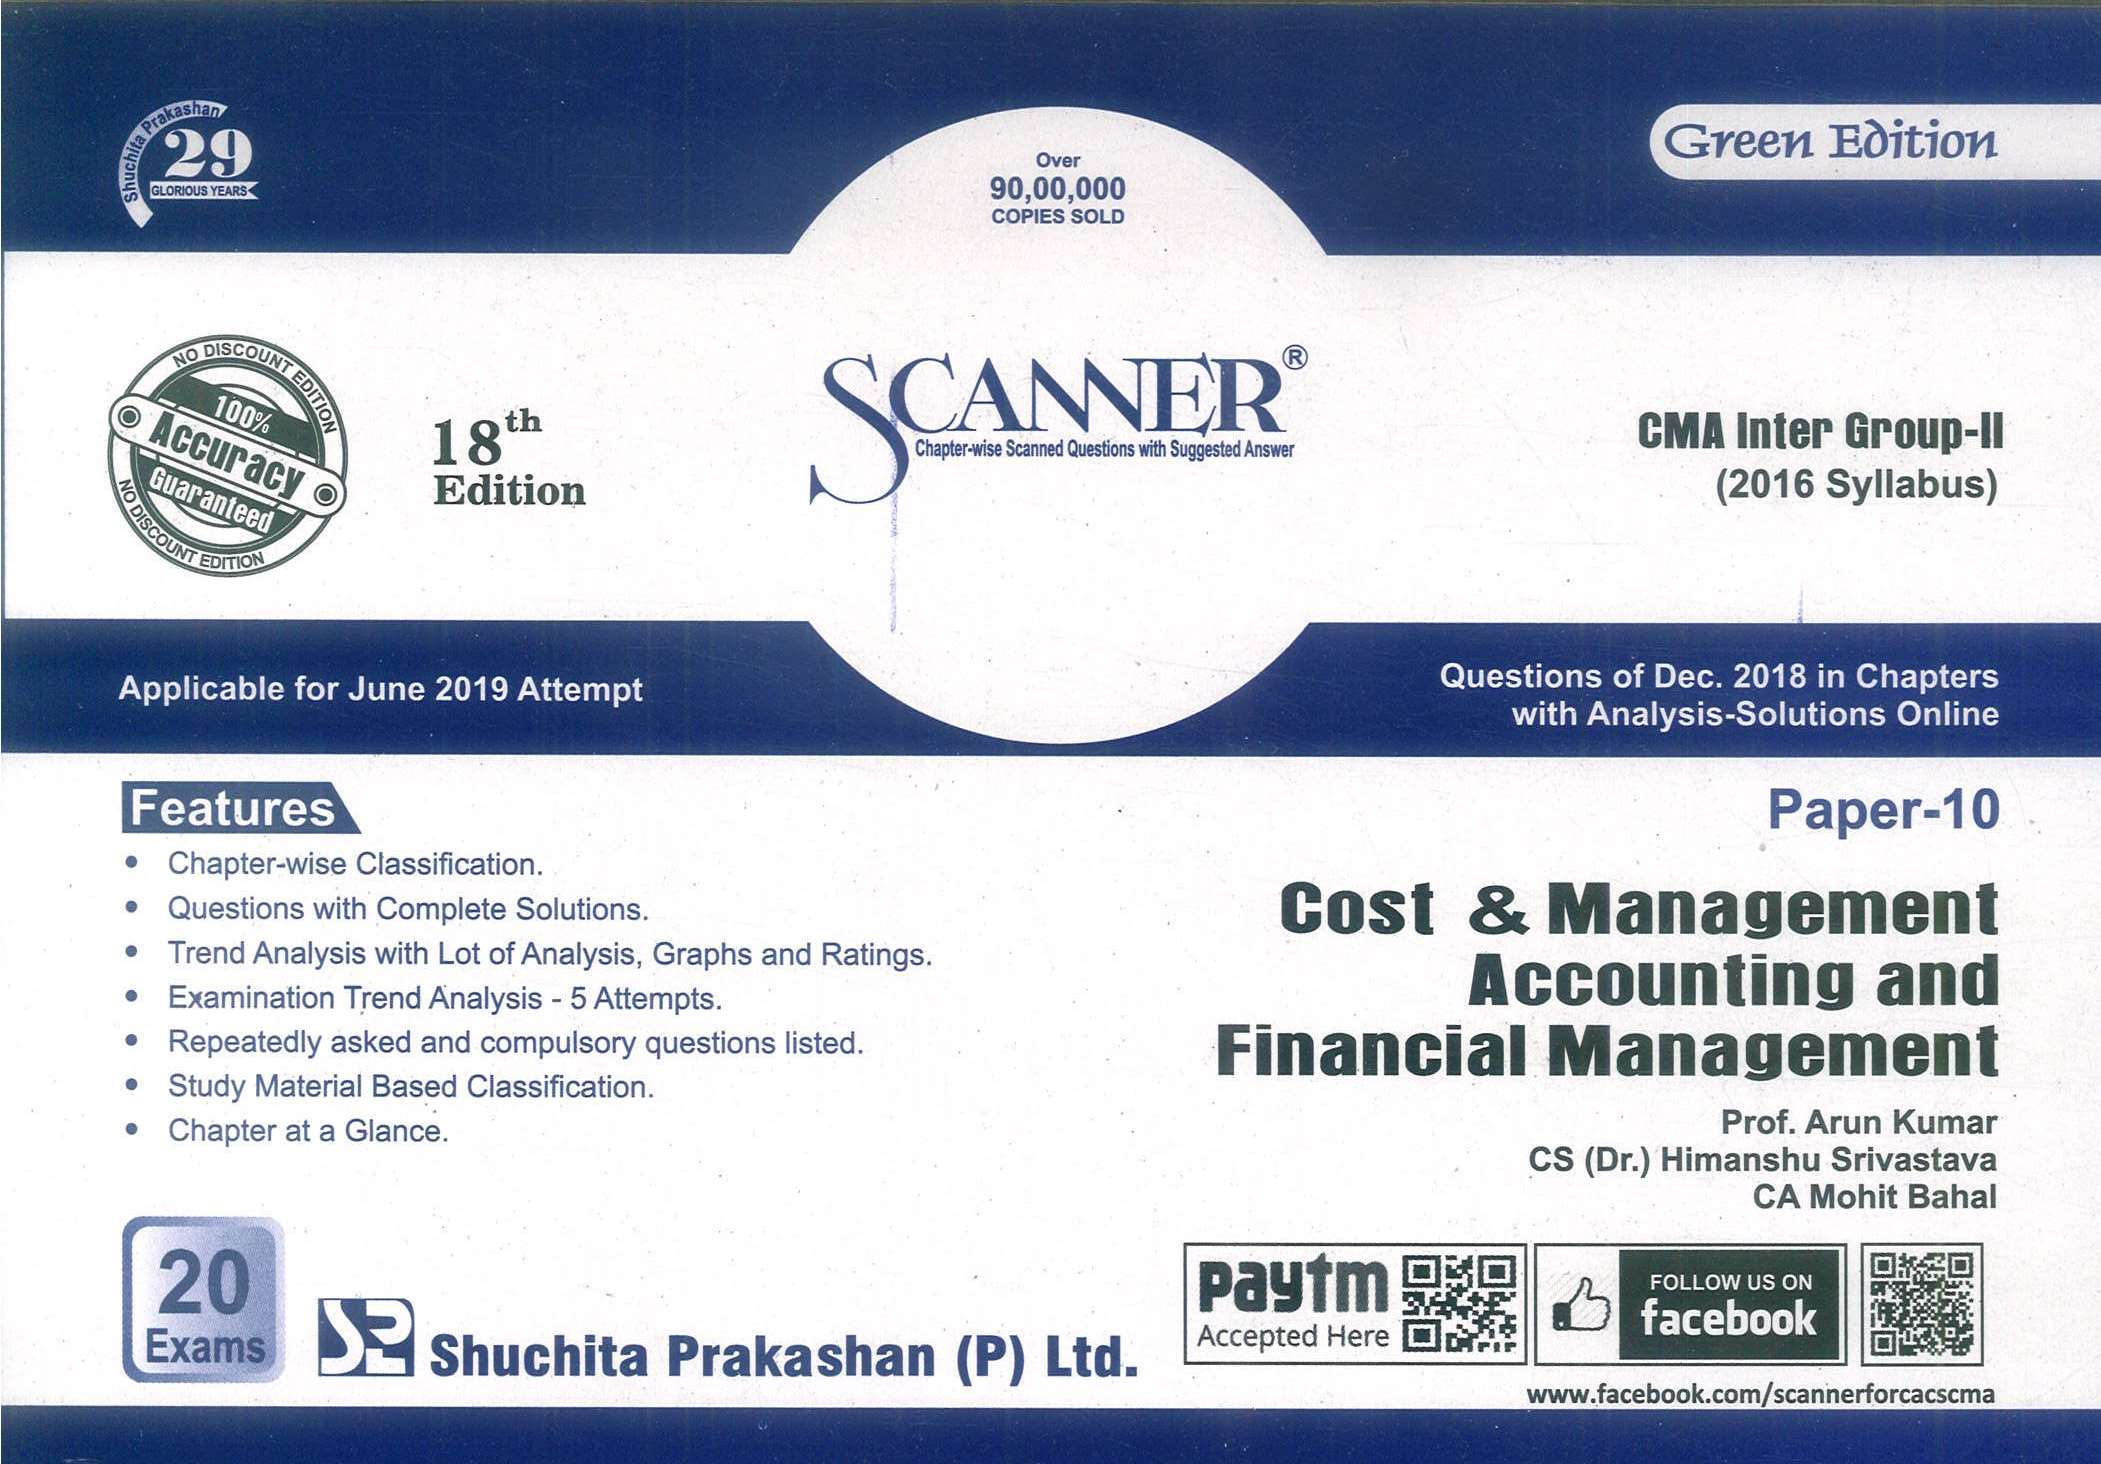 Shuchita Solved Scanner Cost & Management Accounting and Financial Management for CMA Inter Group-II Paper 10 Applicable for June 2019 Attempt  by Prof. Arun Kumar , CS (Dr.) Himanshu Srivastava and CA Mohit Bahal (Shuchita Prakashan) 18th Edition 2019